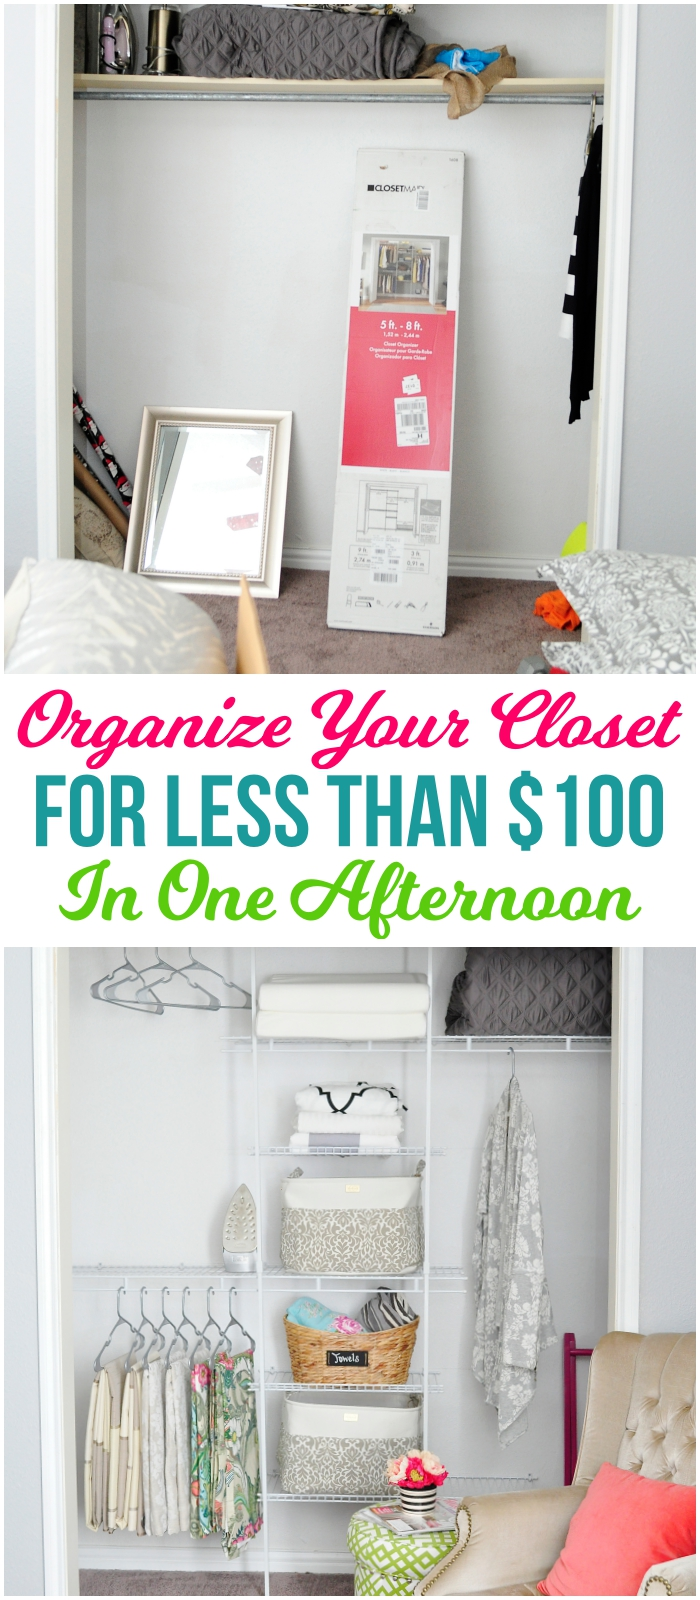 Organize and transform any closet for under $100 in an afternoon. Perfect for a bedroom, guest room, craft room or office space.